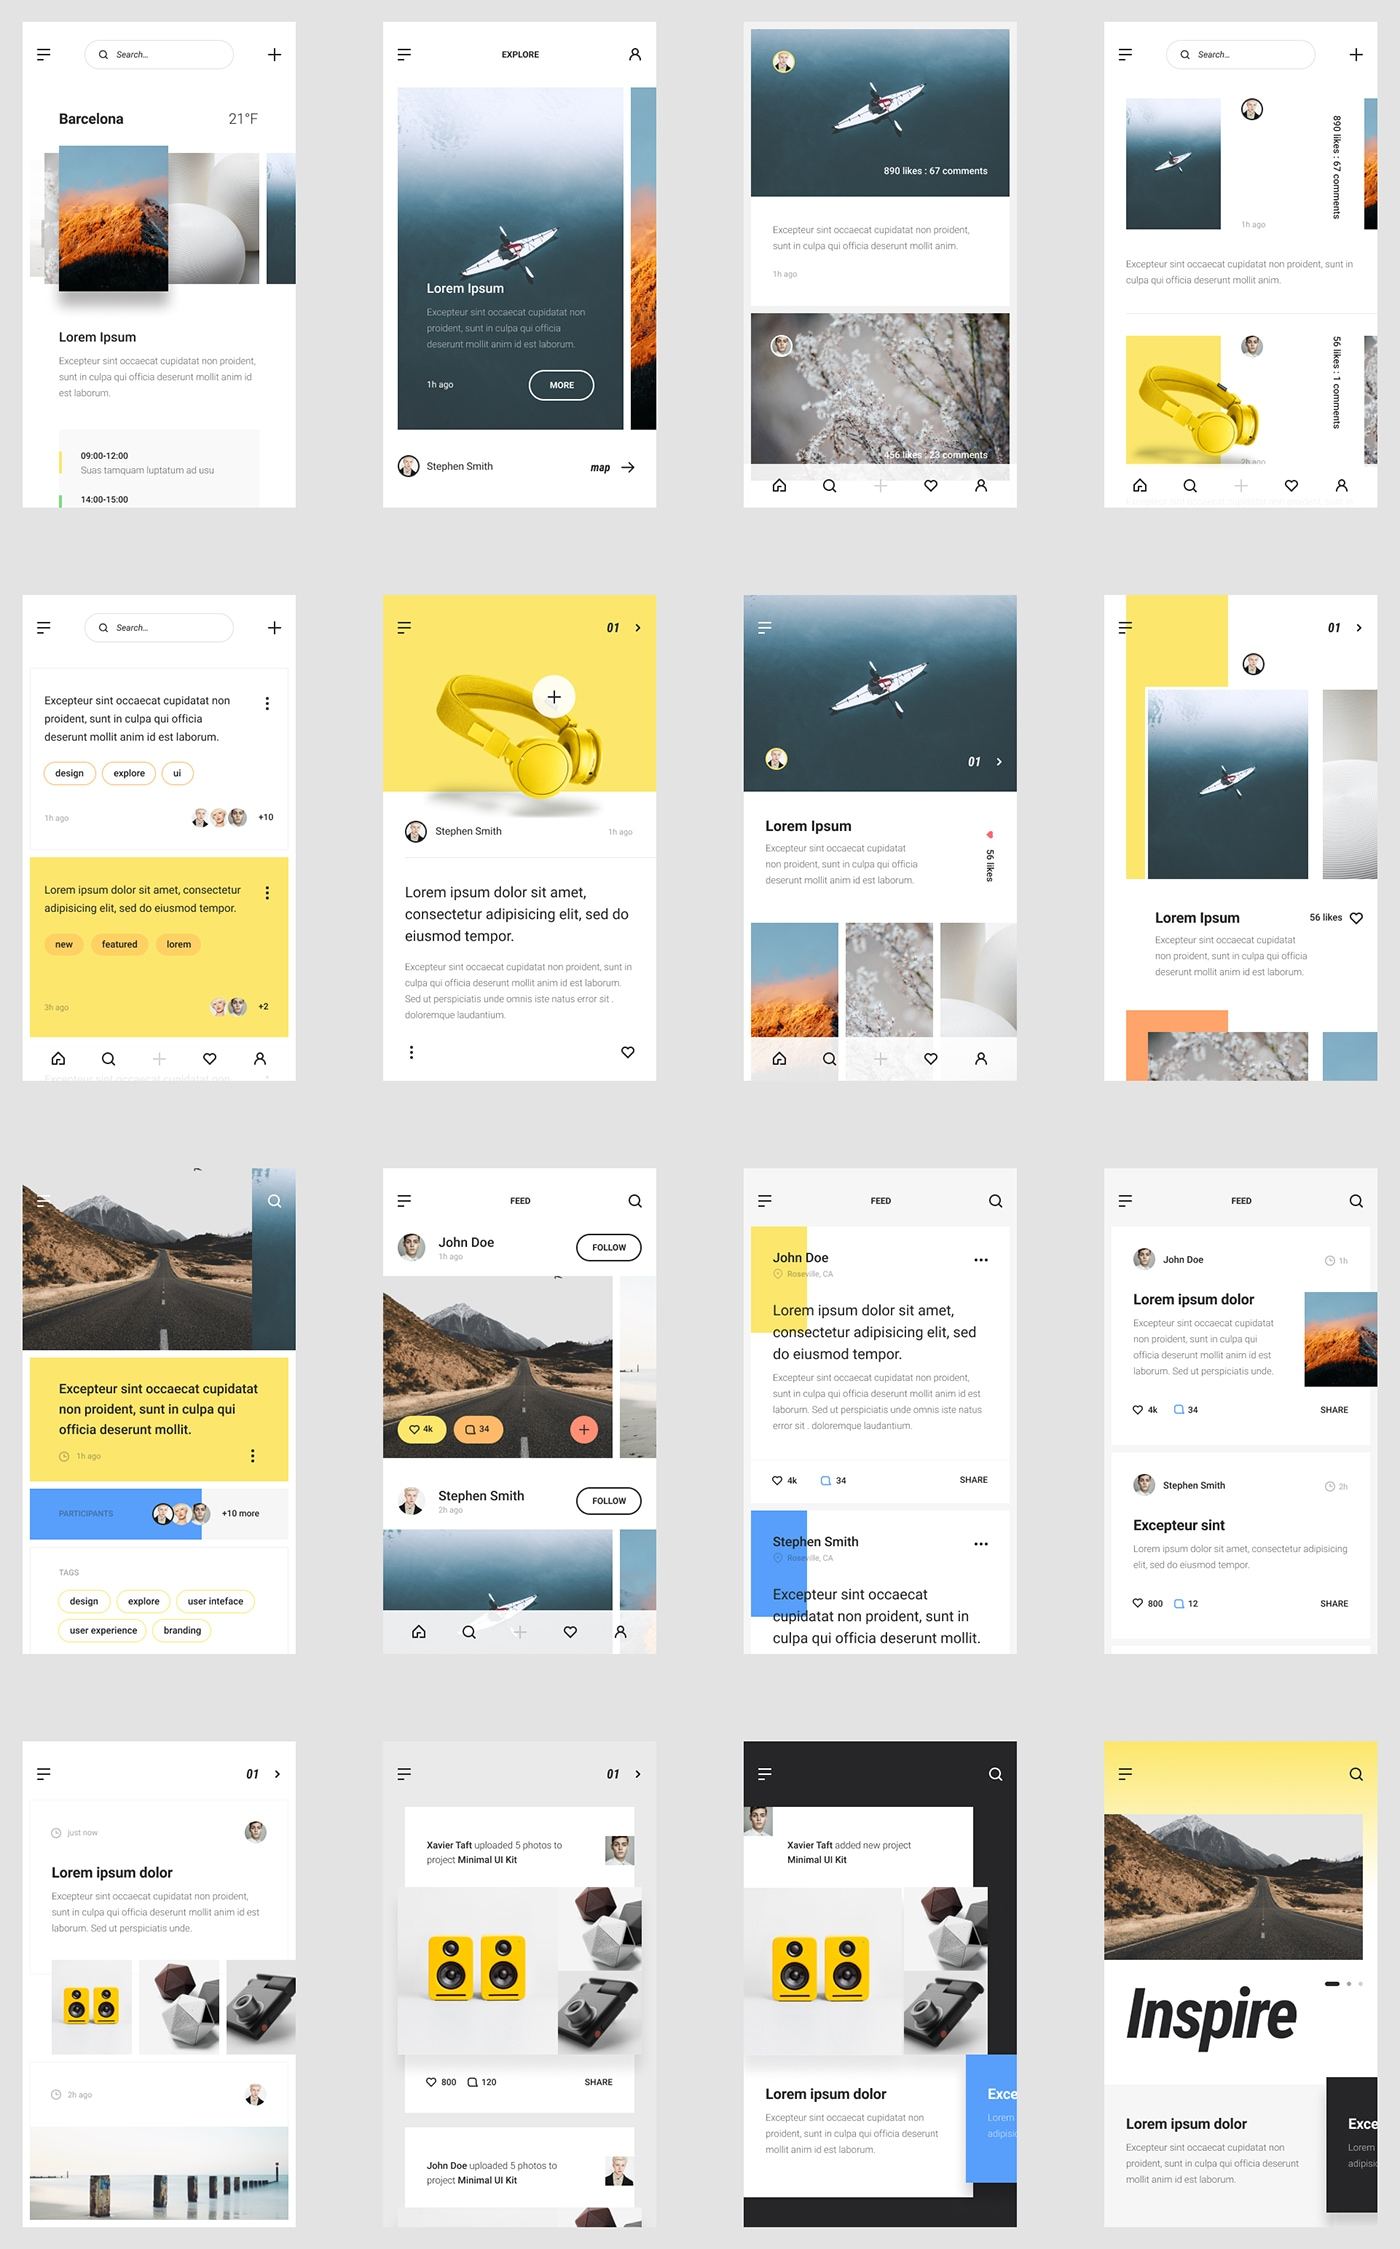 MNML iOS UI Kit - Multi-purpose iOS UI Kit for Sketch, Figma, PS & Adobe XD. Designed by UI8.net